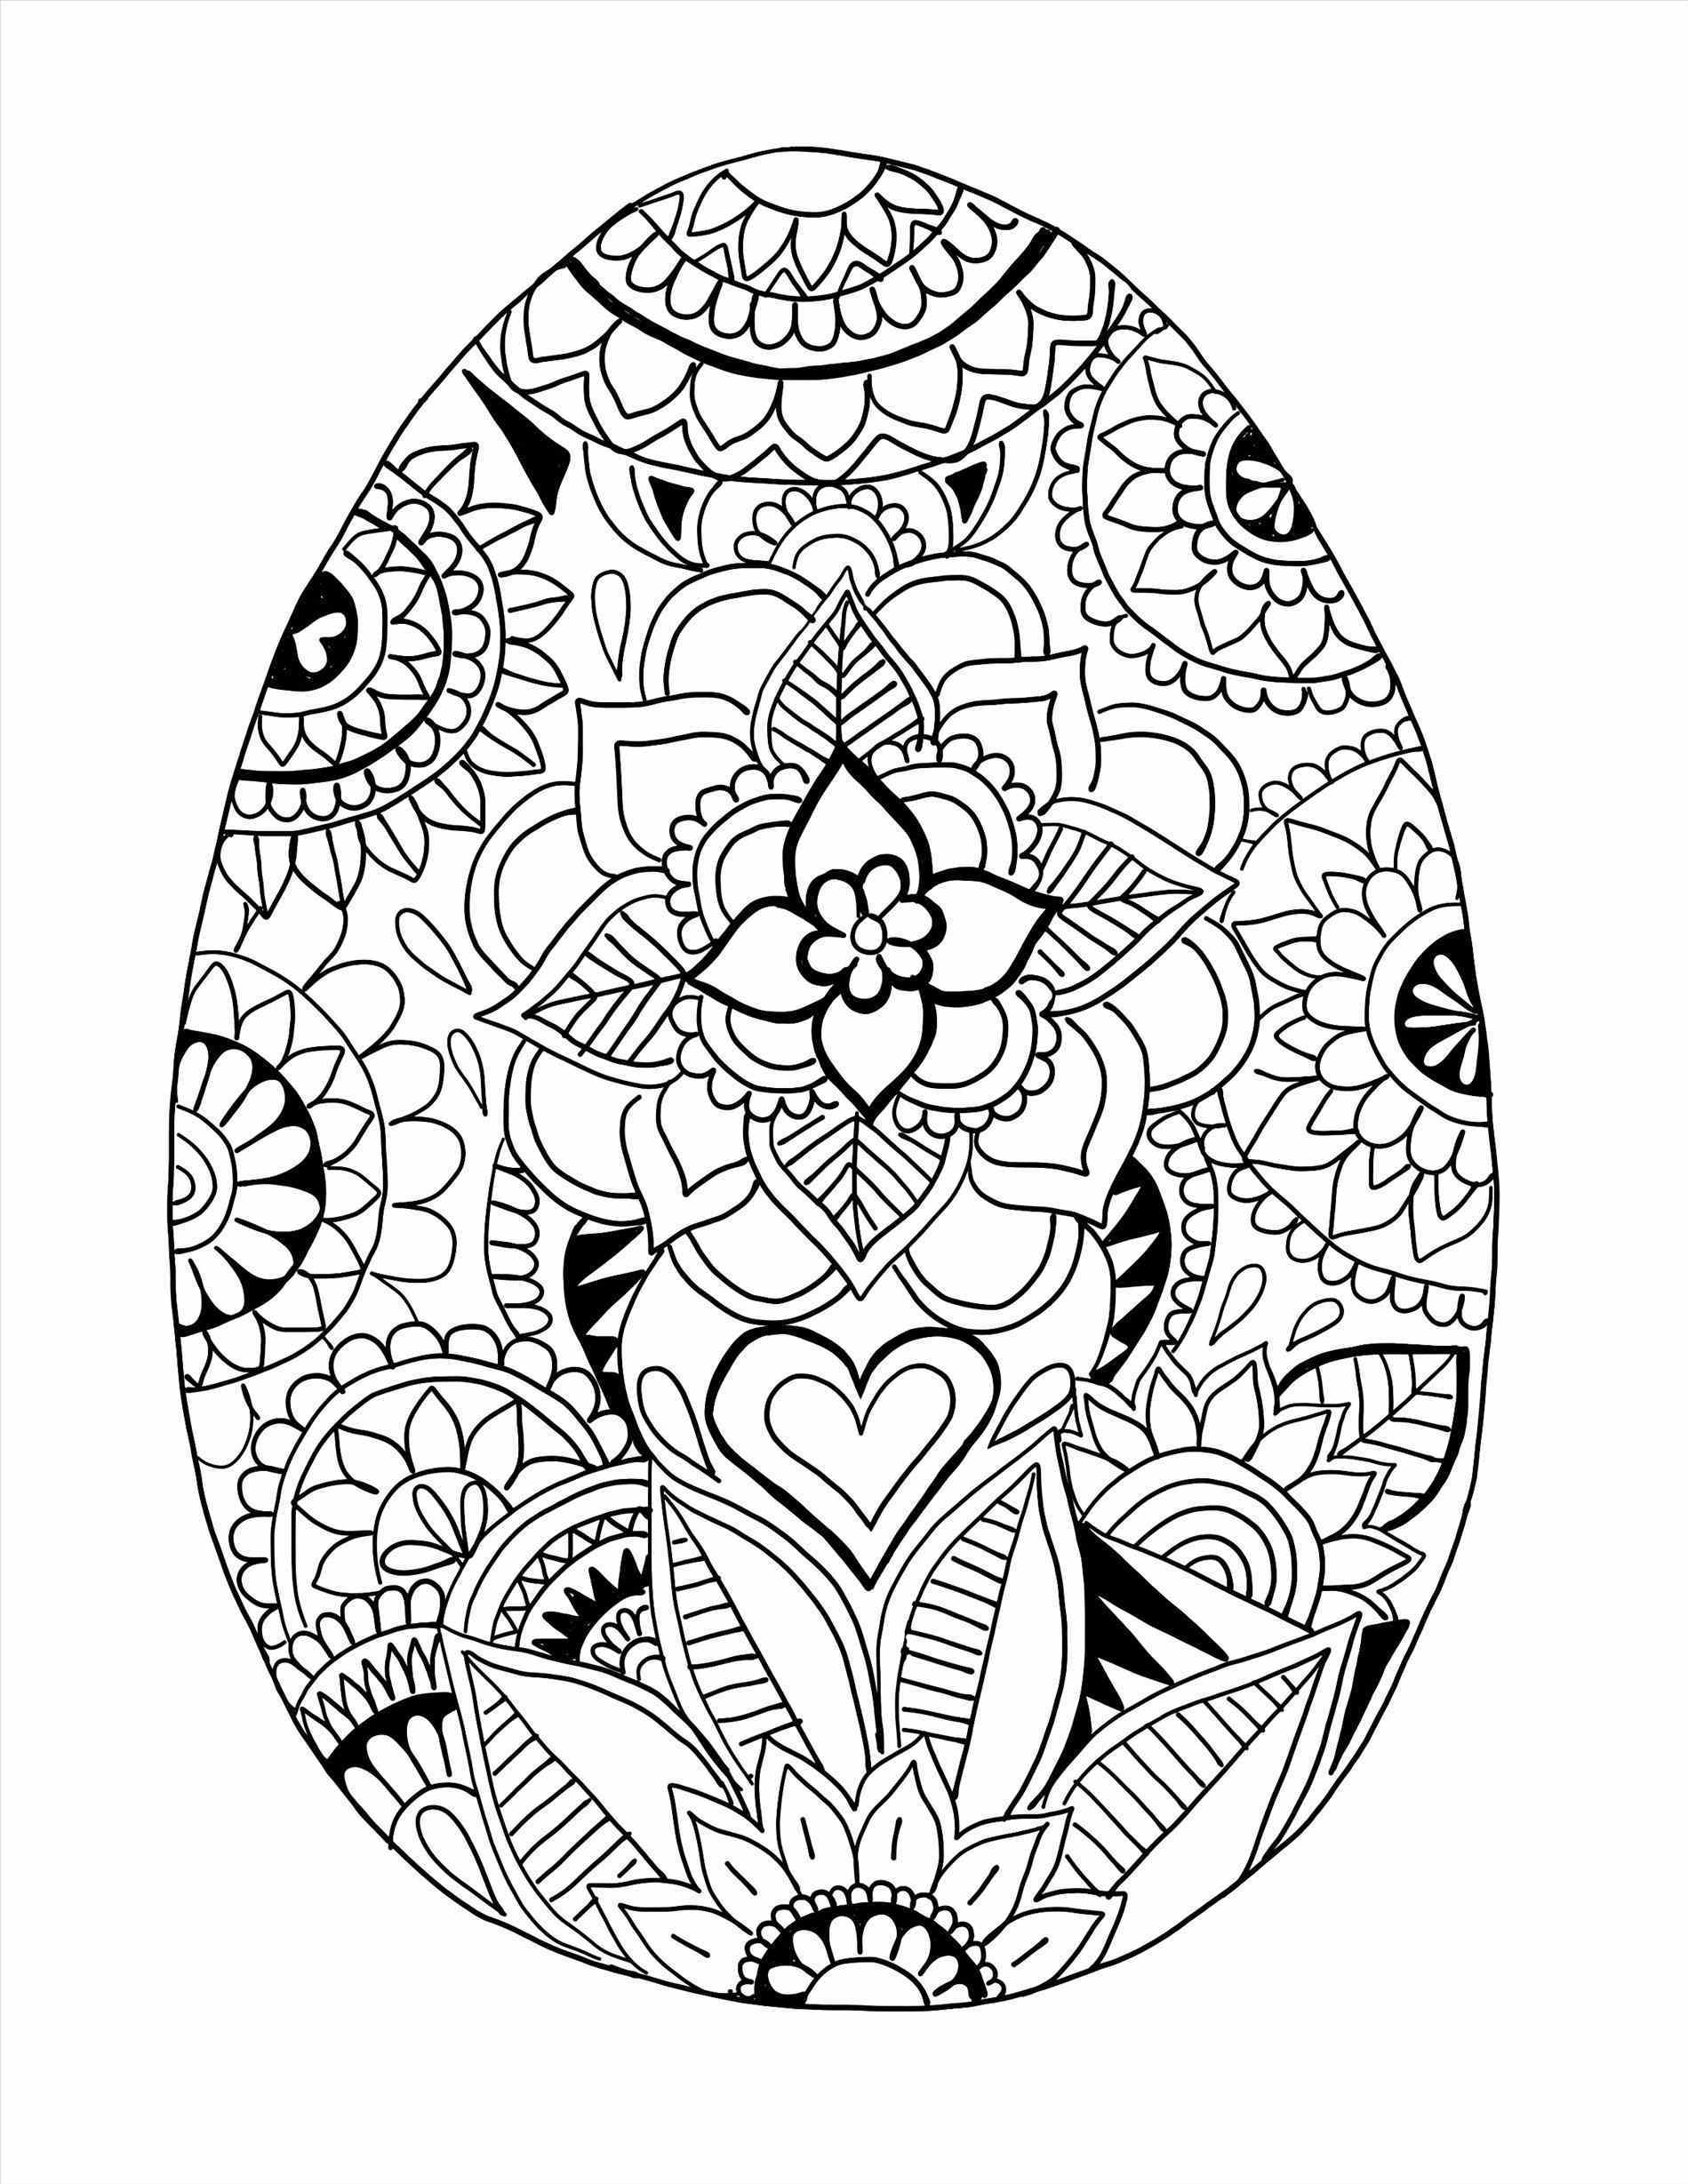 easter egg coloring pages free printable easter egg coloring pages coloring home coloring pages easter egg